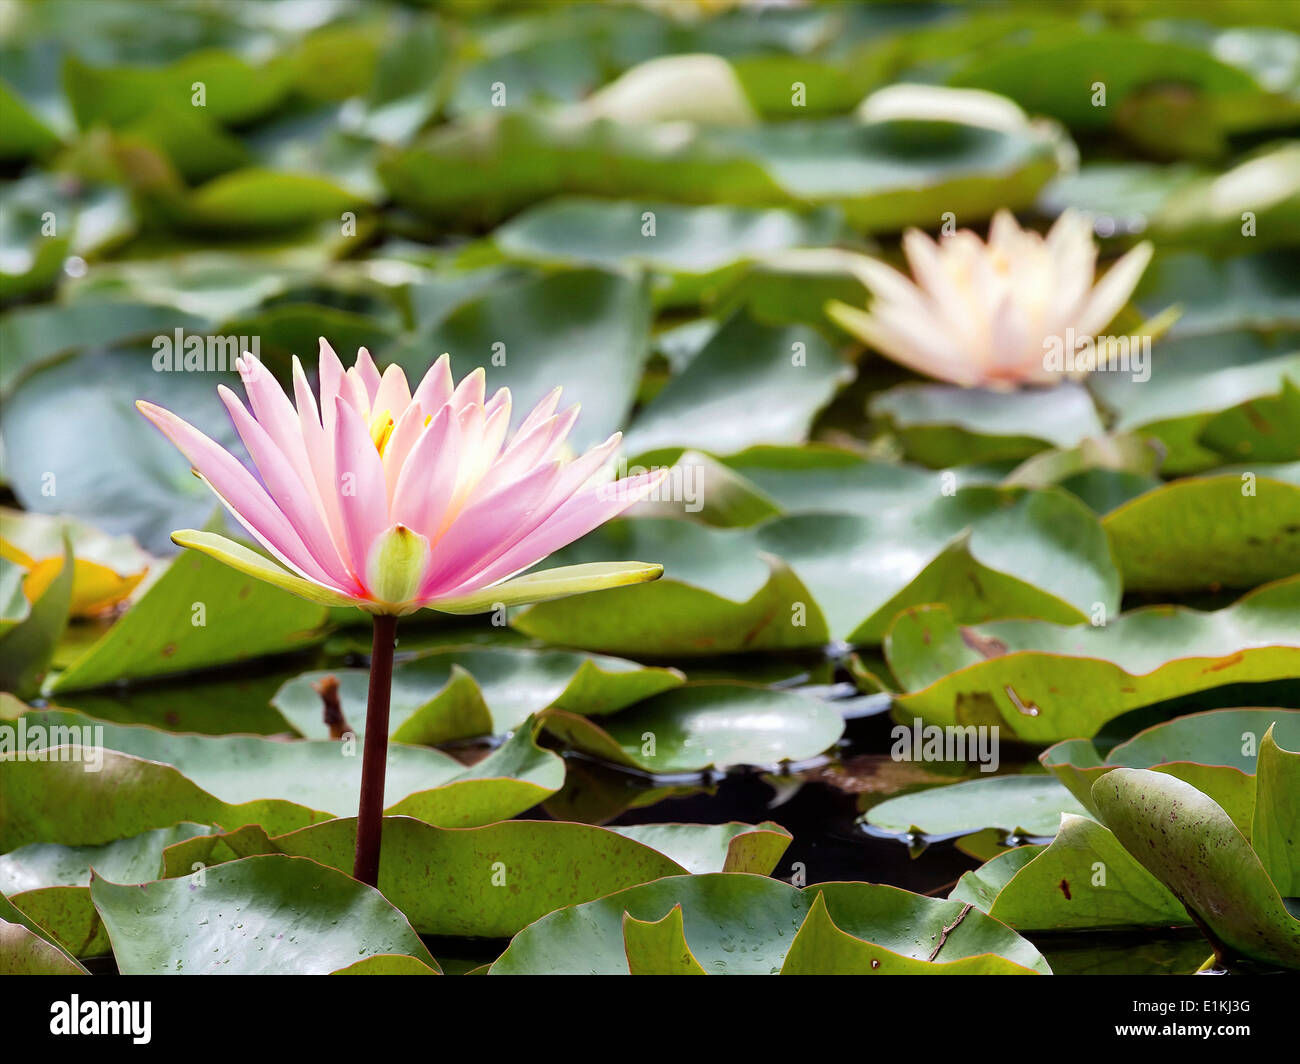 Water lily flowers and lilypads in a pond stock photo royalty free water lily flowers and lilypads in a pond izmirmasajfo